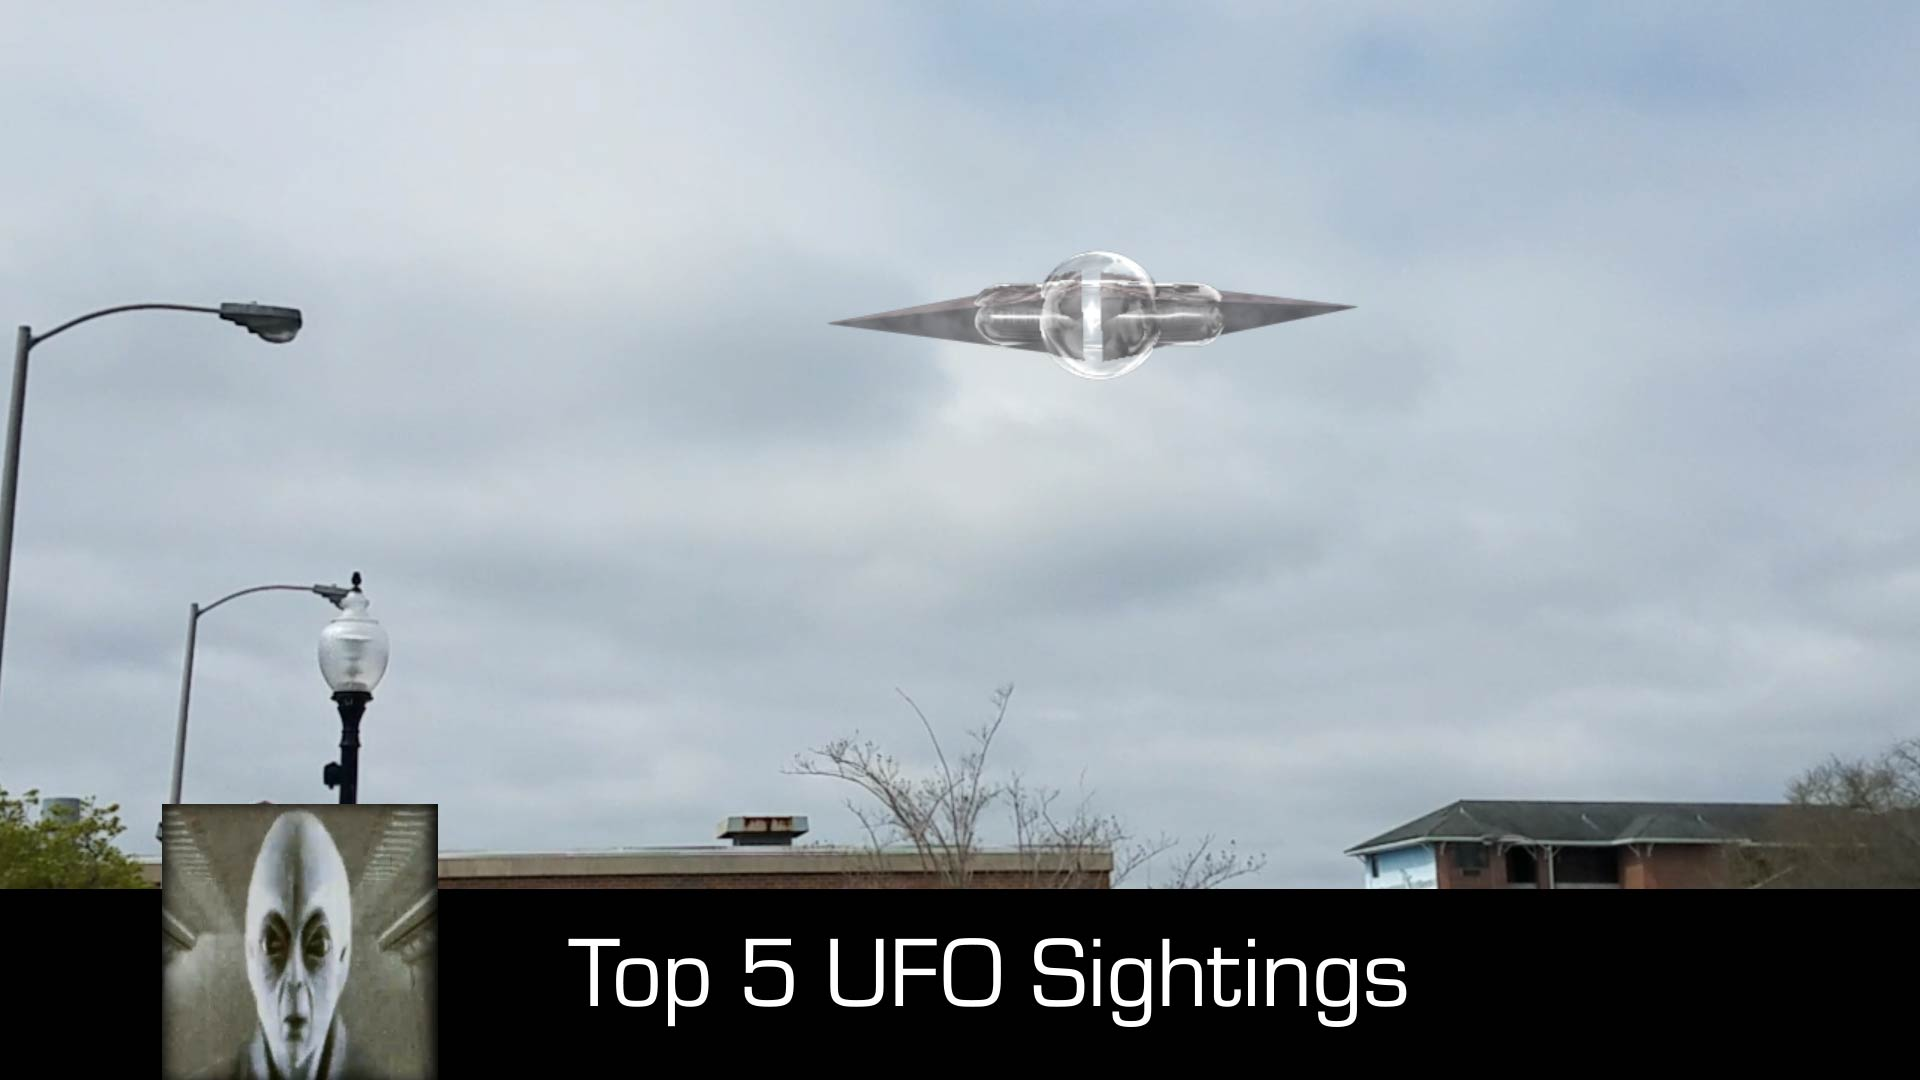 Top 5 UFO Sightings June 10th 2018